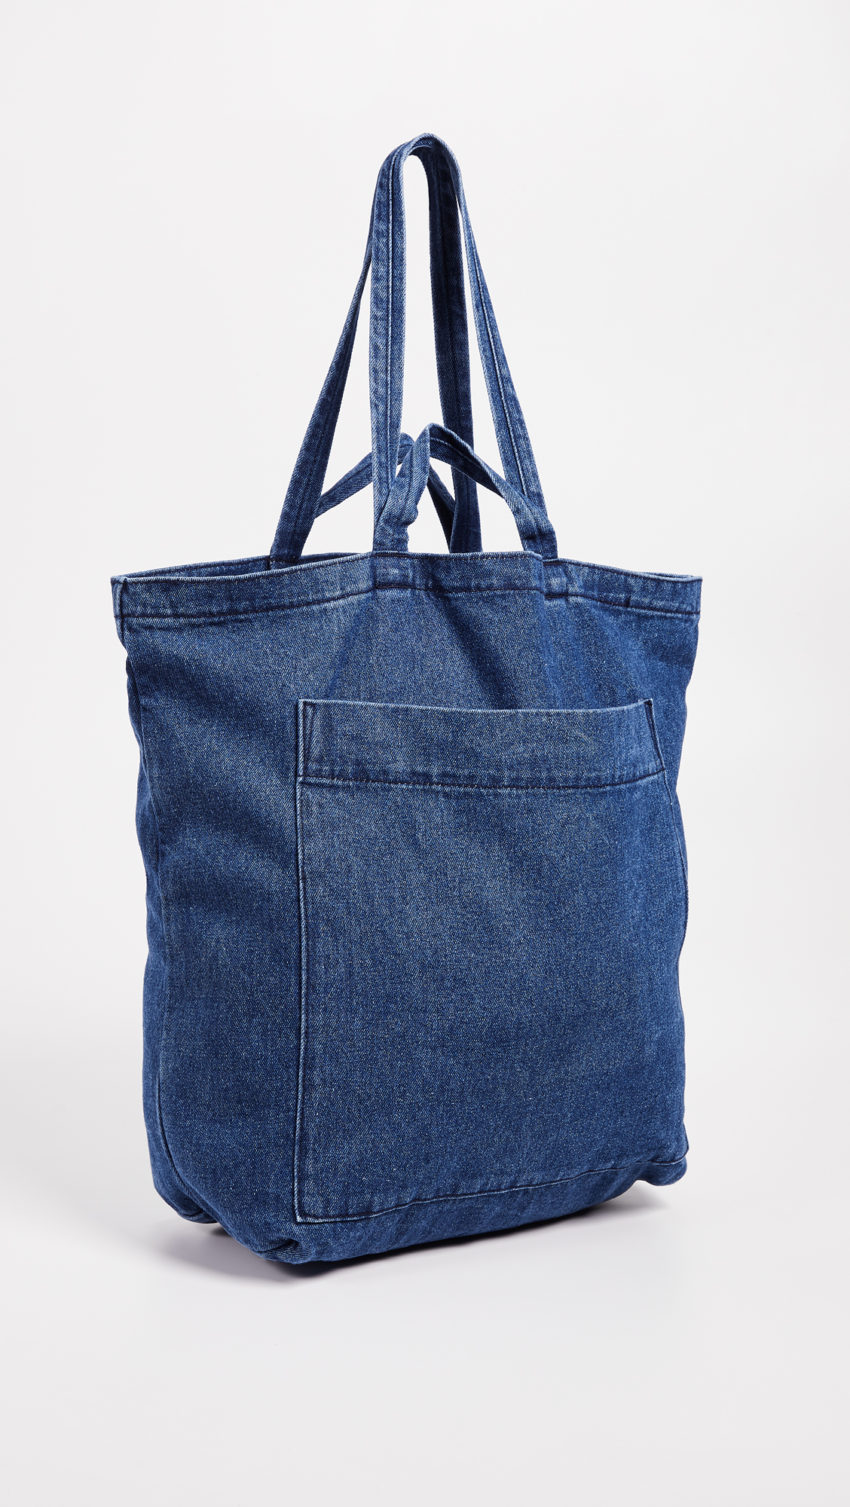 Baggu Giant Pocket Tote | ACCESSORIZING FALL 2018